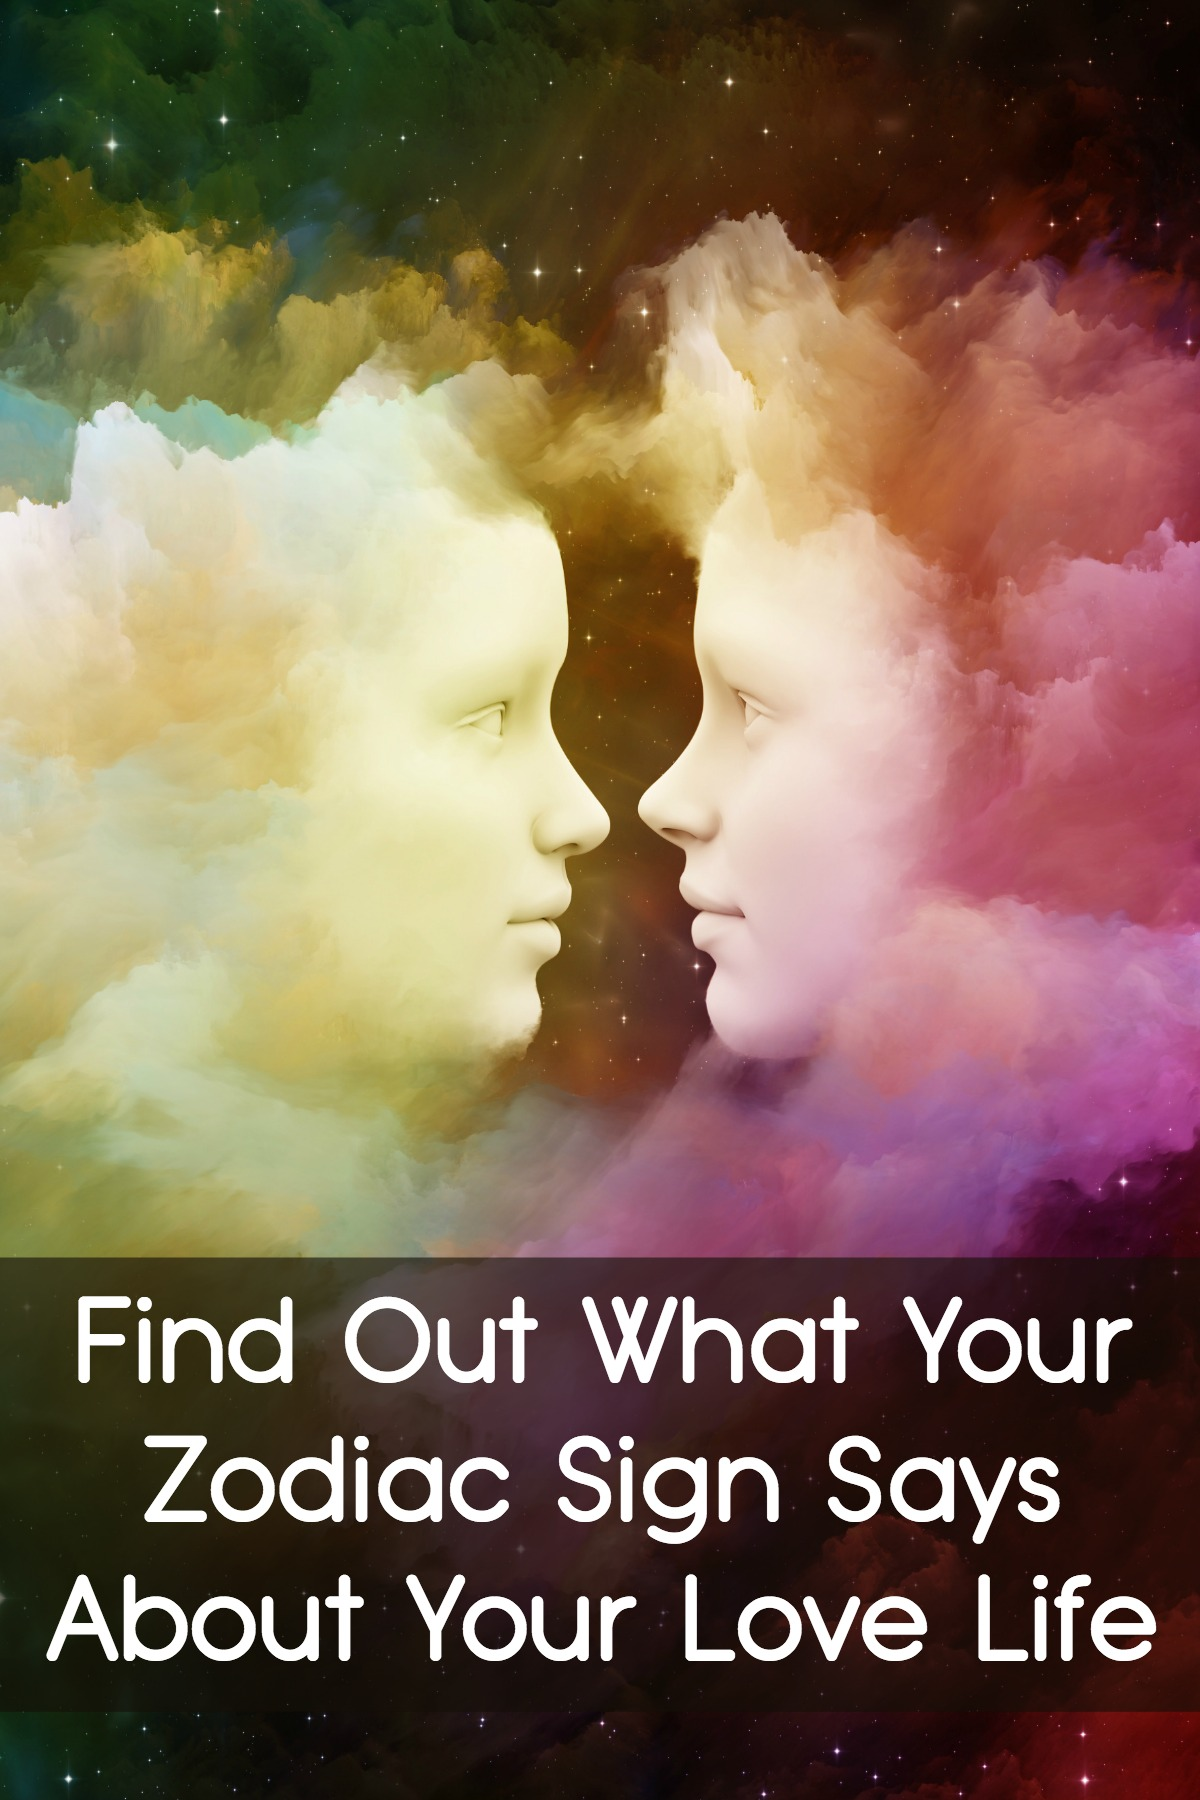 Find Out What Your Zodiac Sign Says About Your Love Life ~